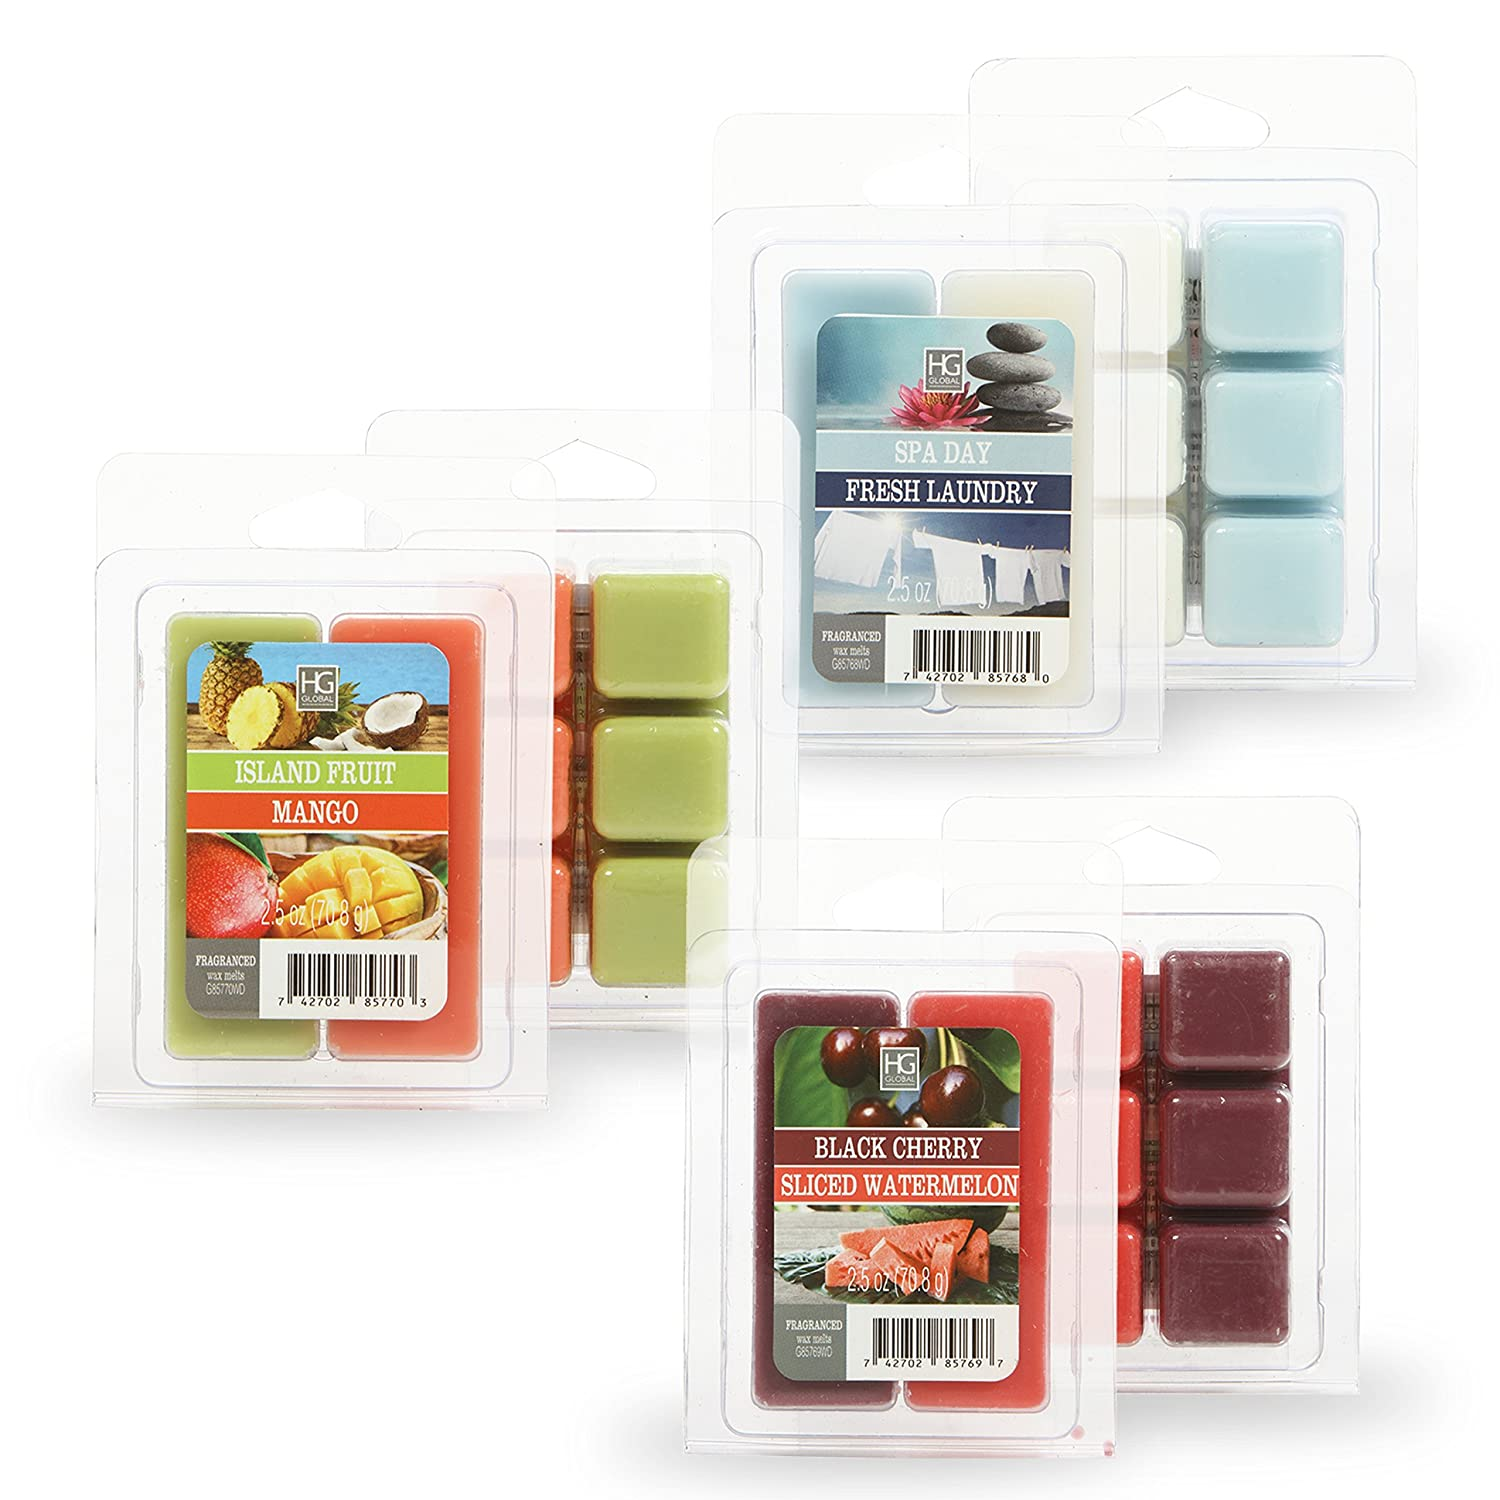 Hosley Set of 6 Assorted Wax Cubes Melts 2.5 Ounce Each. Spa Day Fresh Laundry Black Cherries Sliced Watermelon and Island Fruit Mango. Infused with Essential Oils Ideal Gift O5